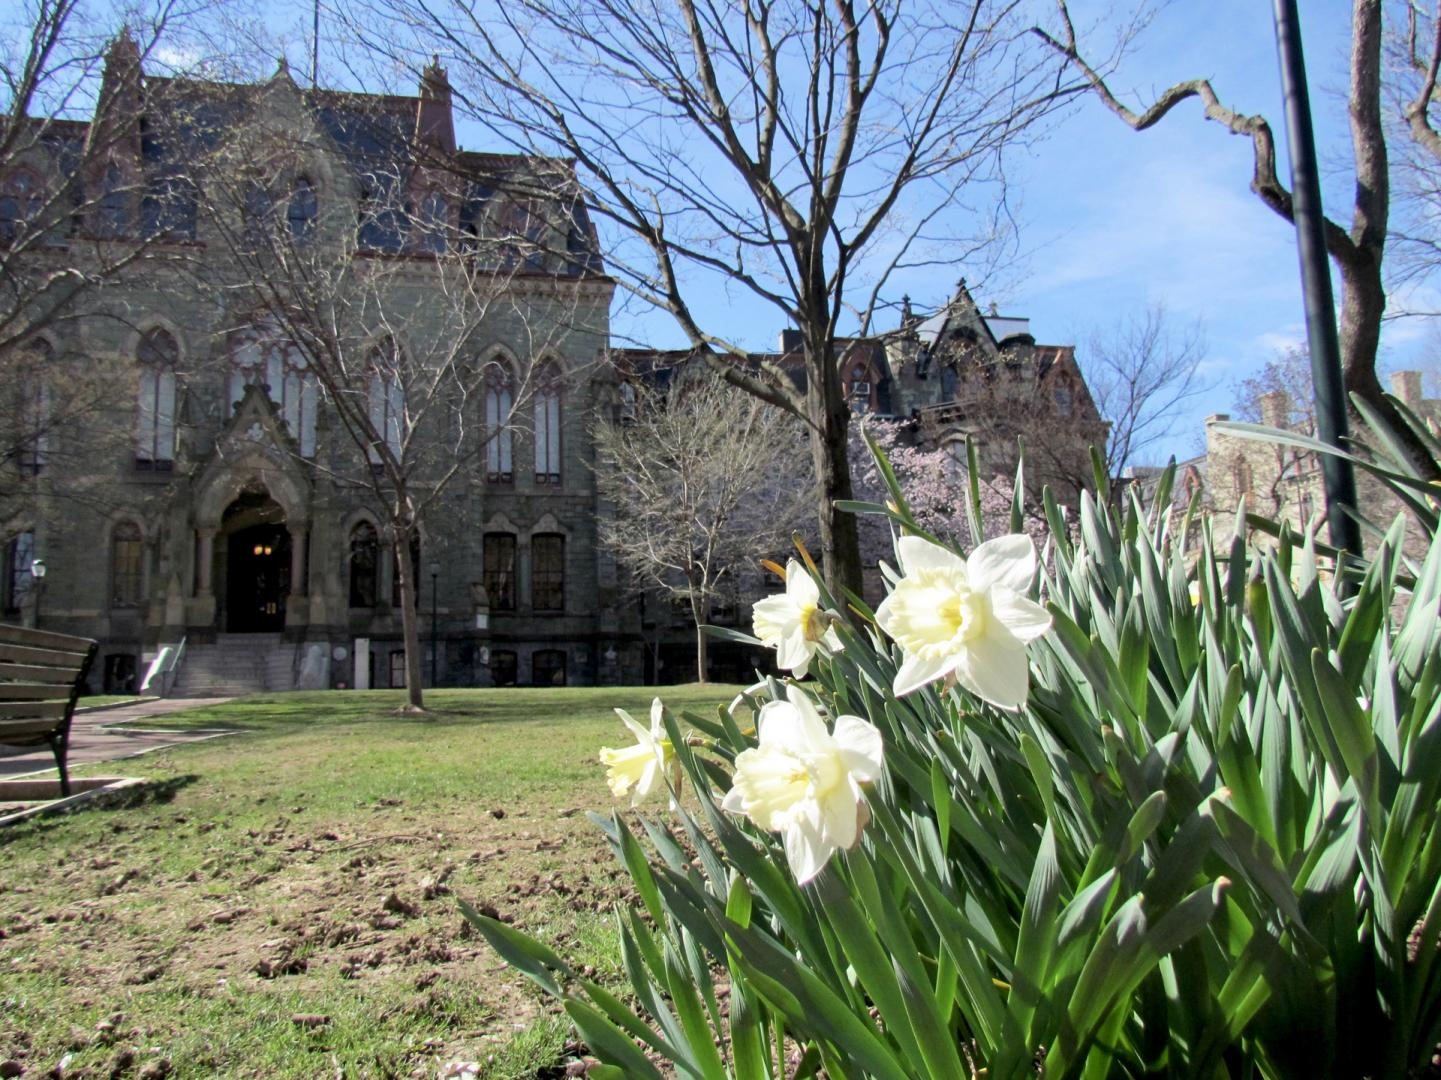 College Hall with Daffodils